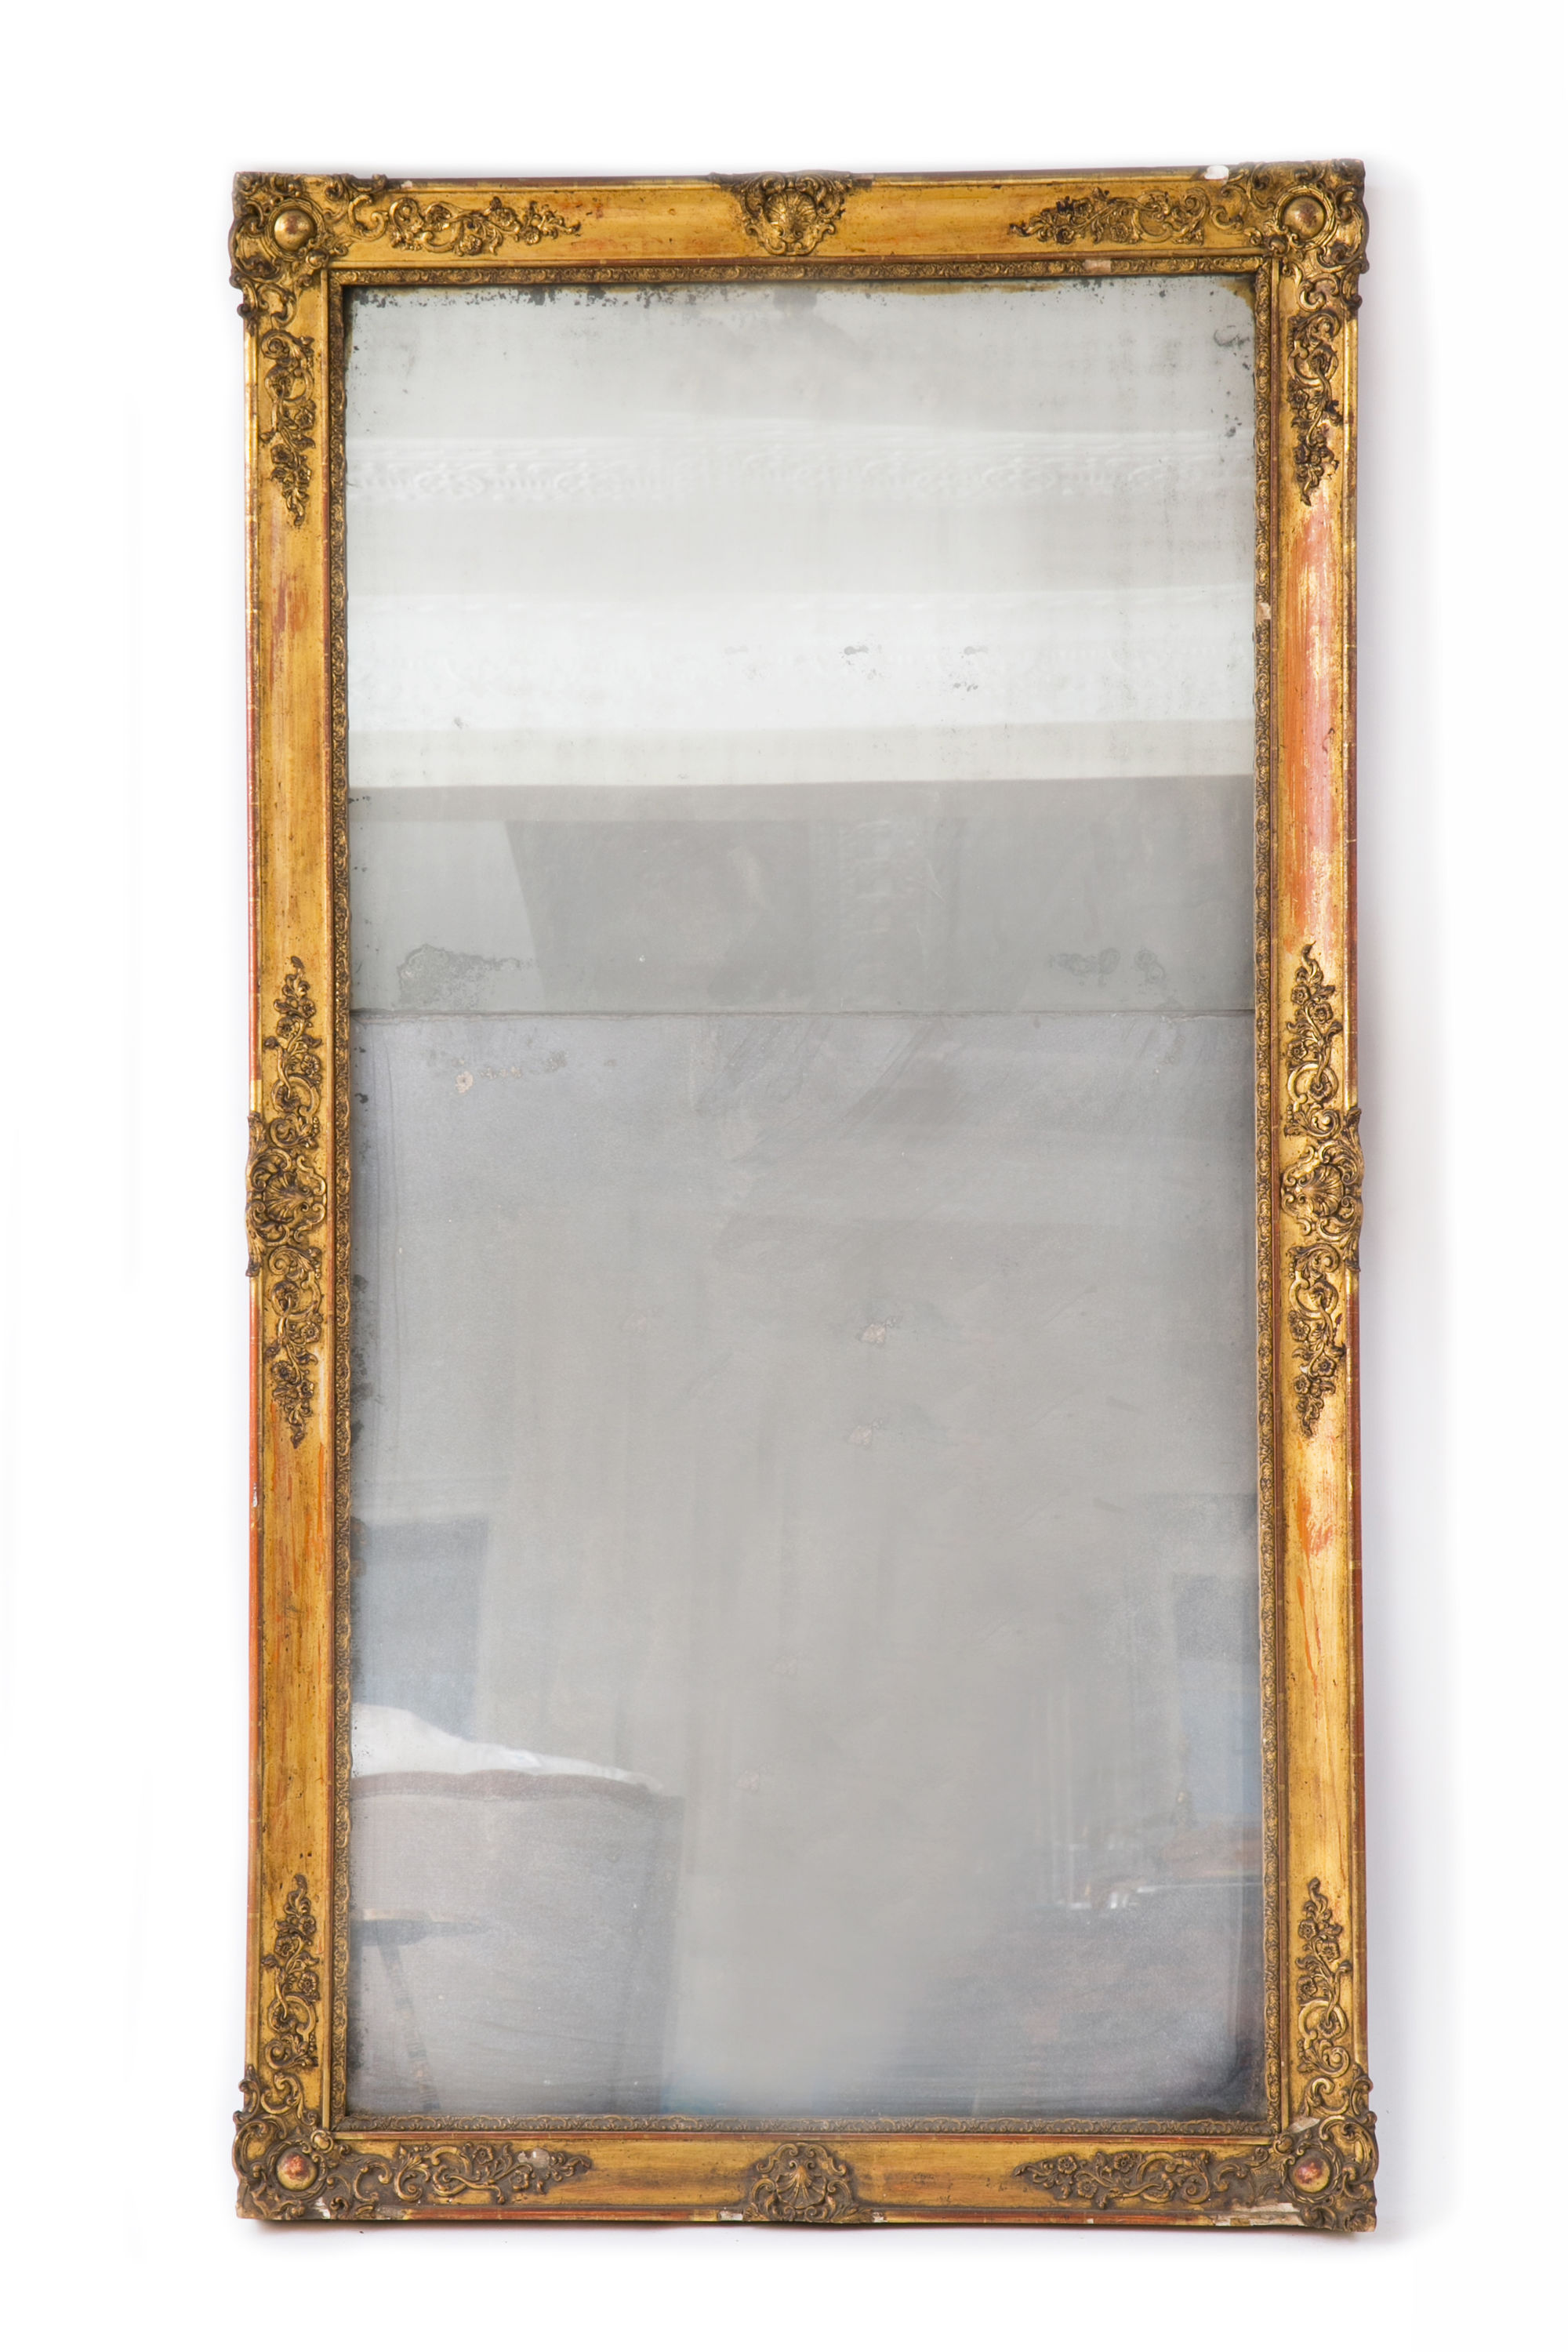 French Gilded Antique Mirror 19th Century French Gilded